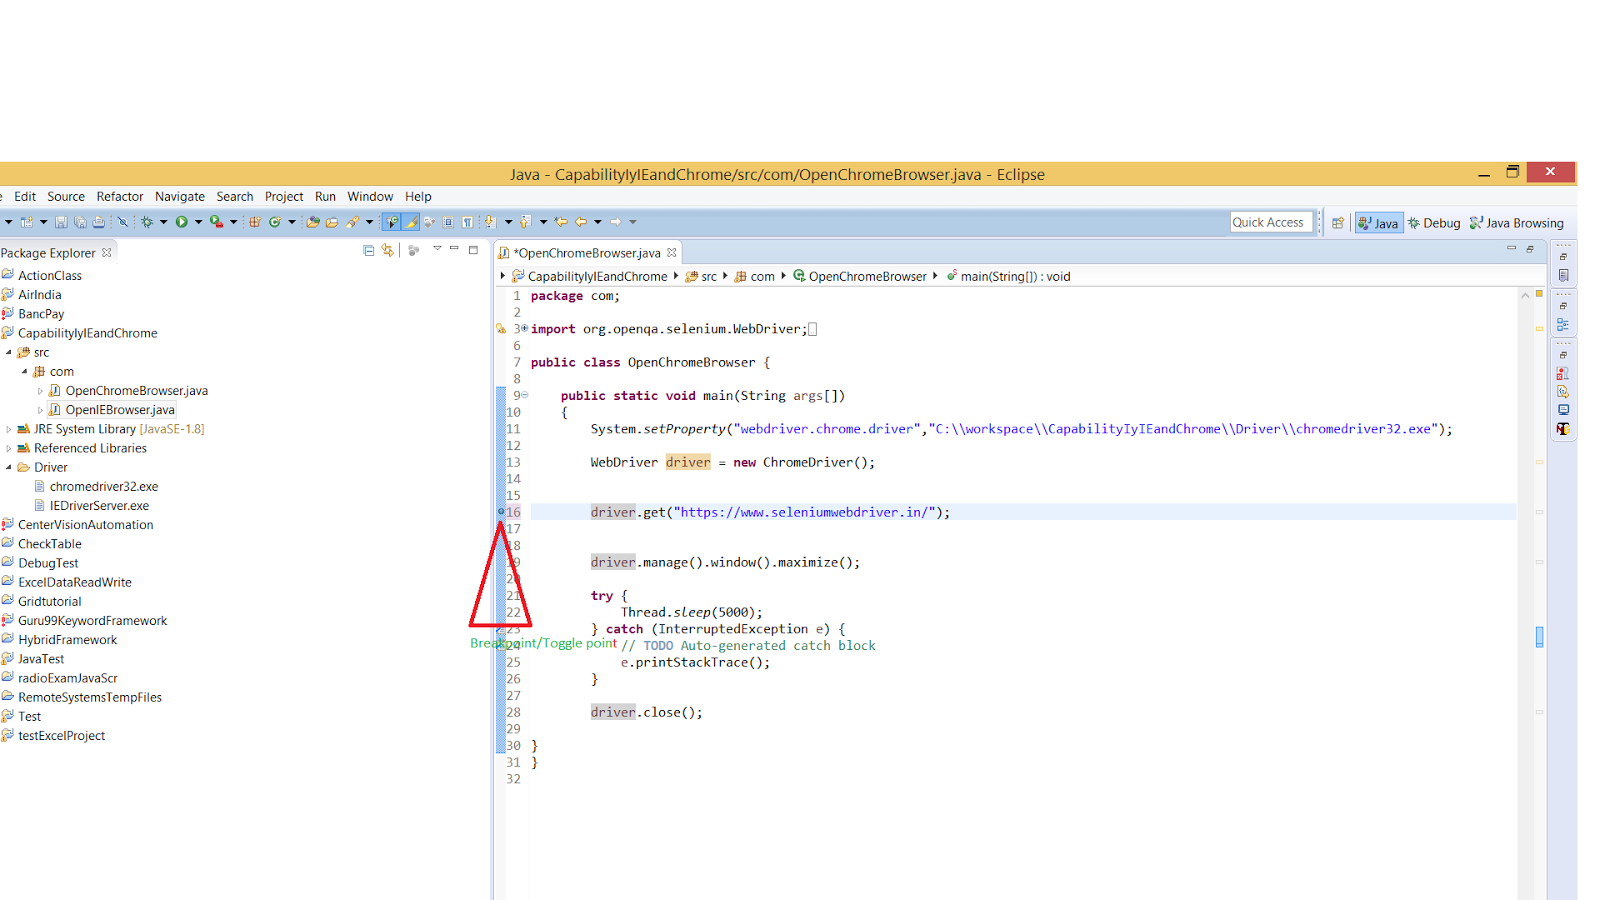 DEBUGGING JAVA CODE IN ECLIPSE 1 | Selenium WebDriver